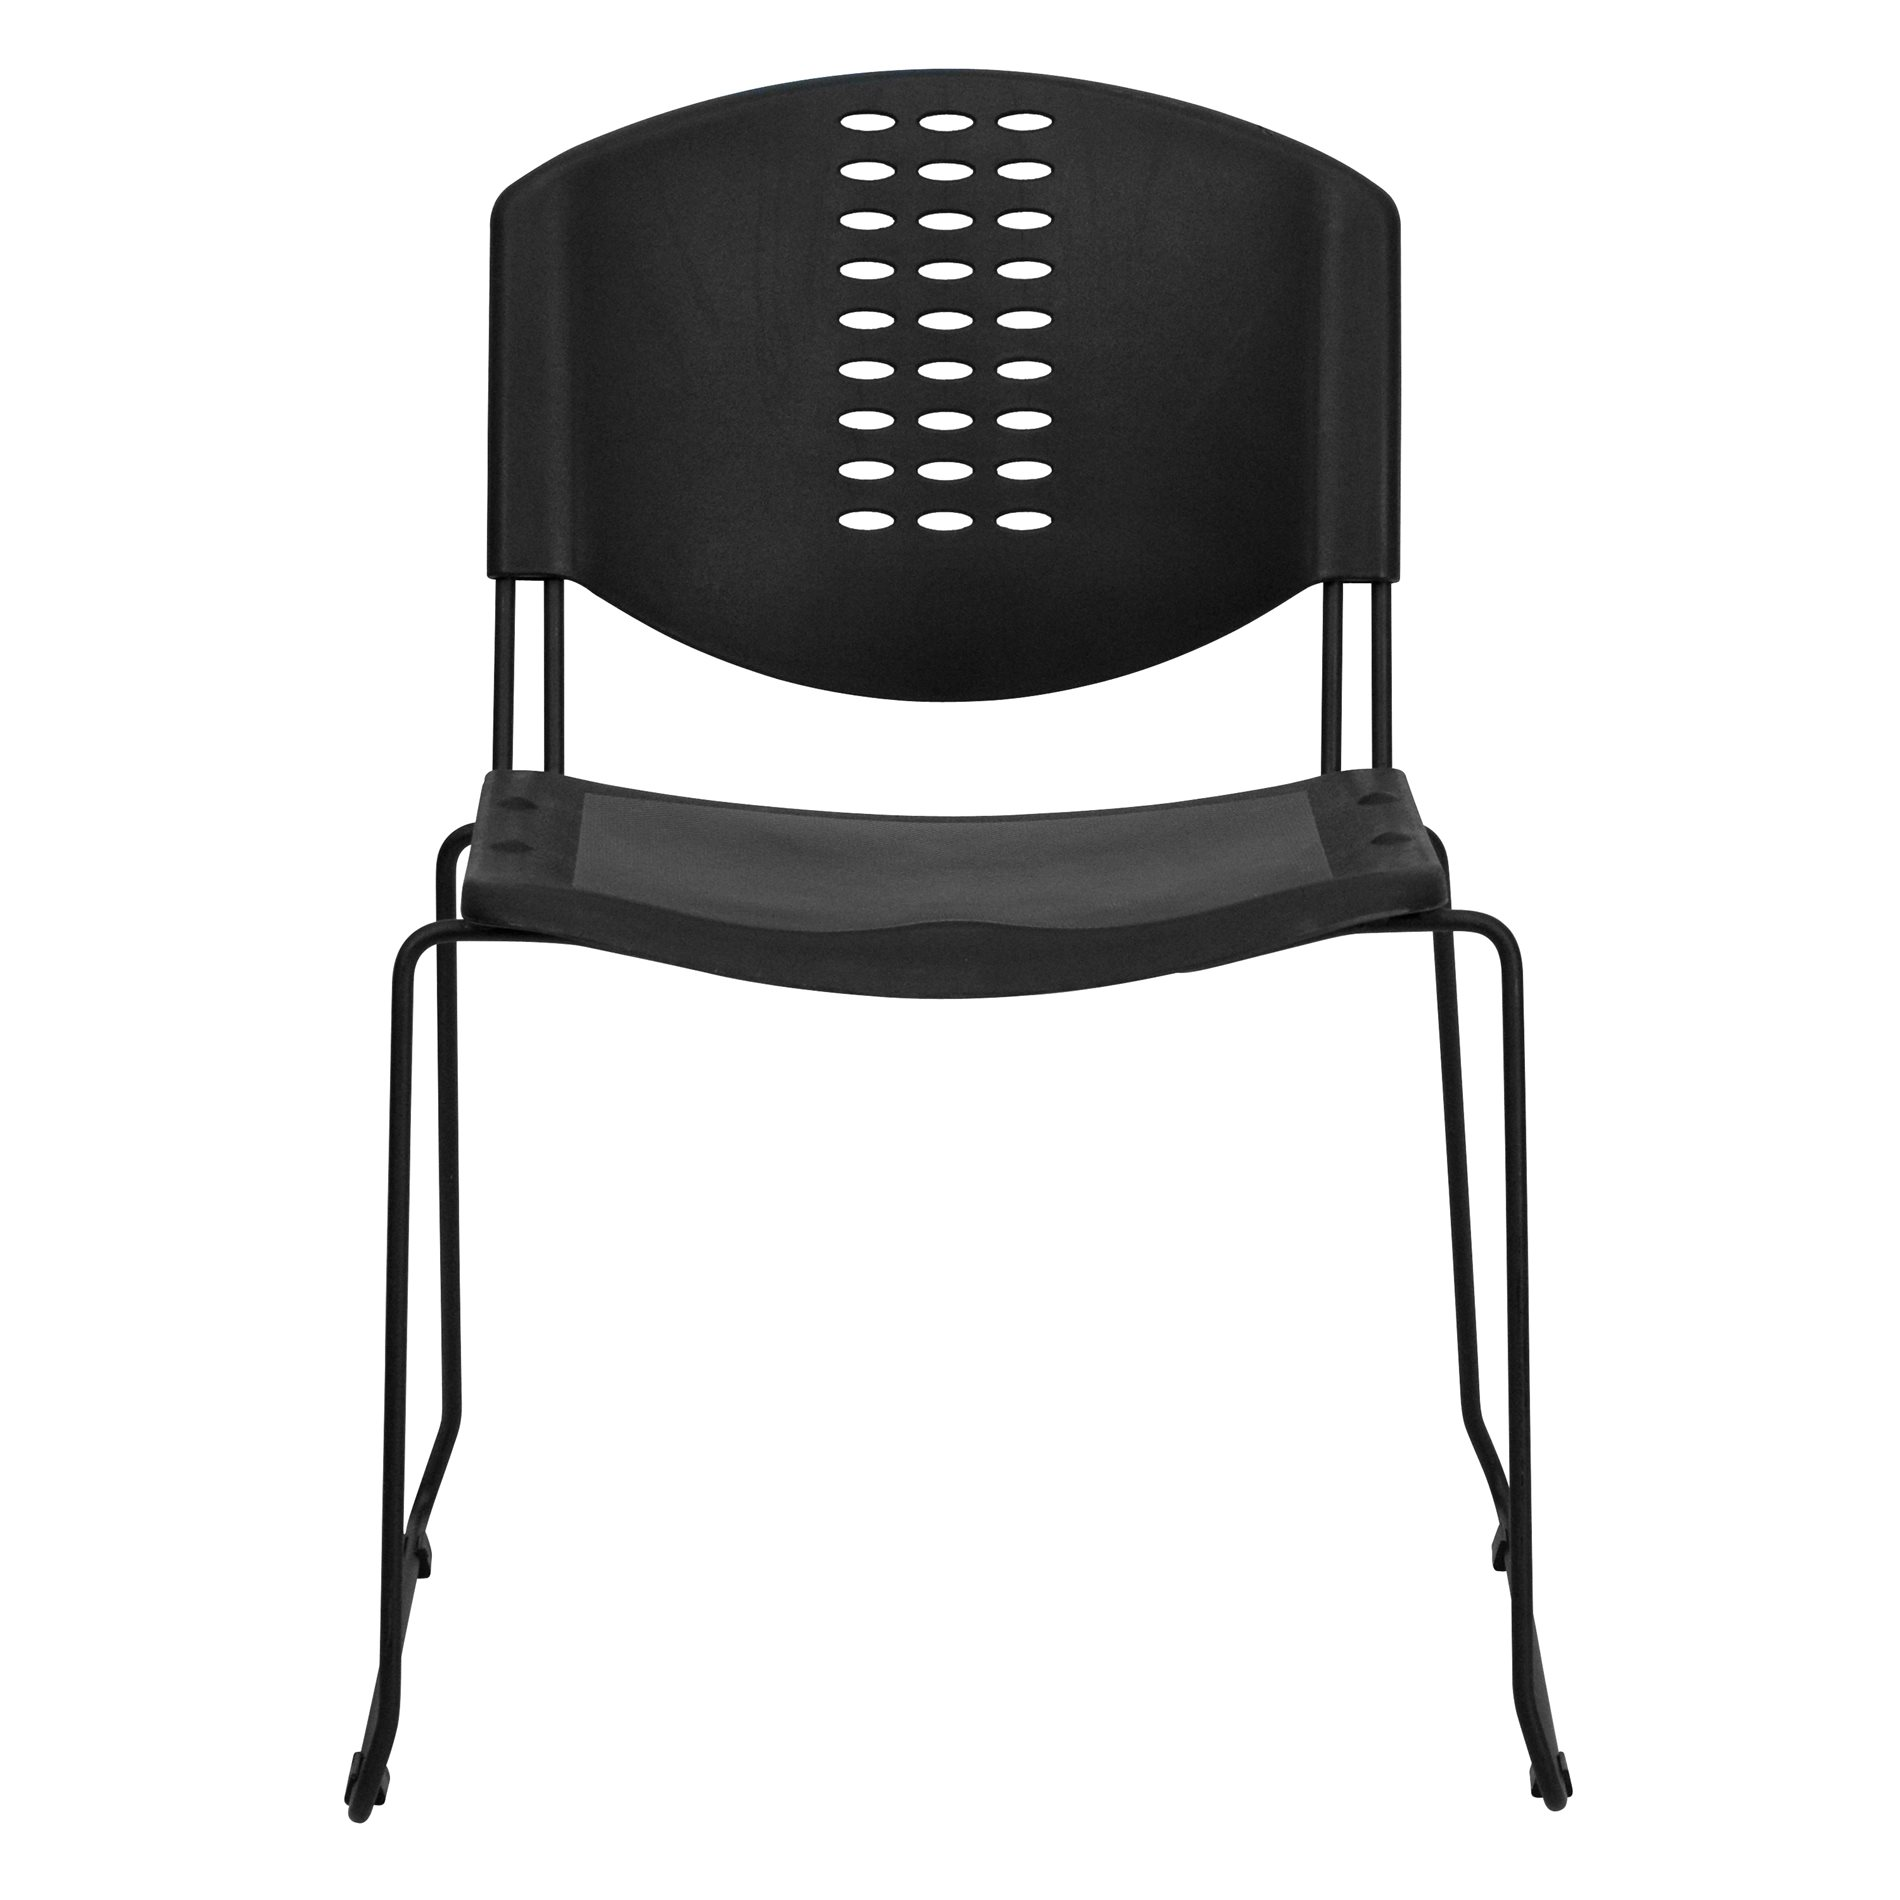 Plastic Stacking Chairs Flash Furniture Rut Nf02 Bk Gg Stack Chairs Plastic Stack